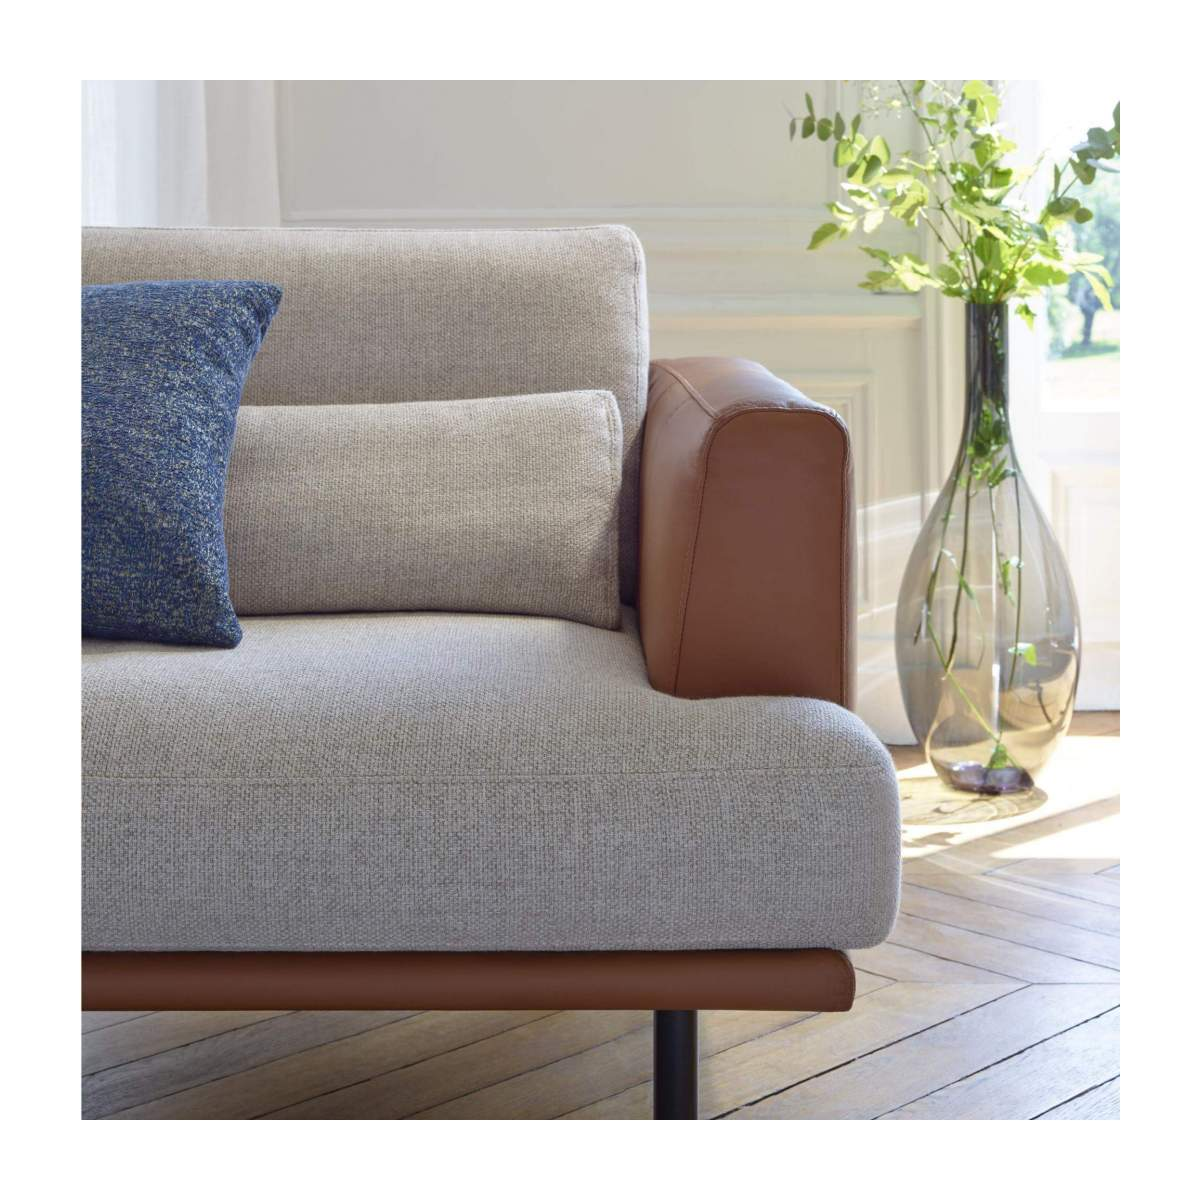 2 seater sofa in Lecce fabric, slade grey with base and armrests in brown leather n°7